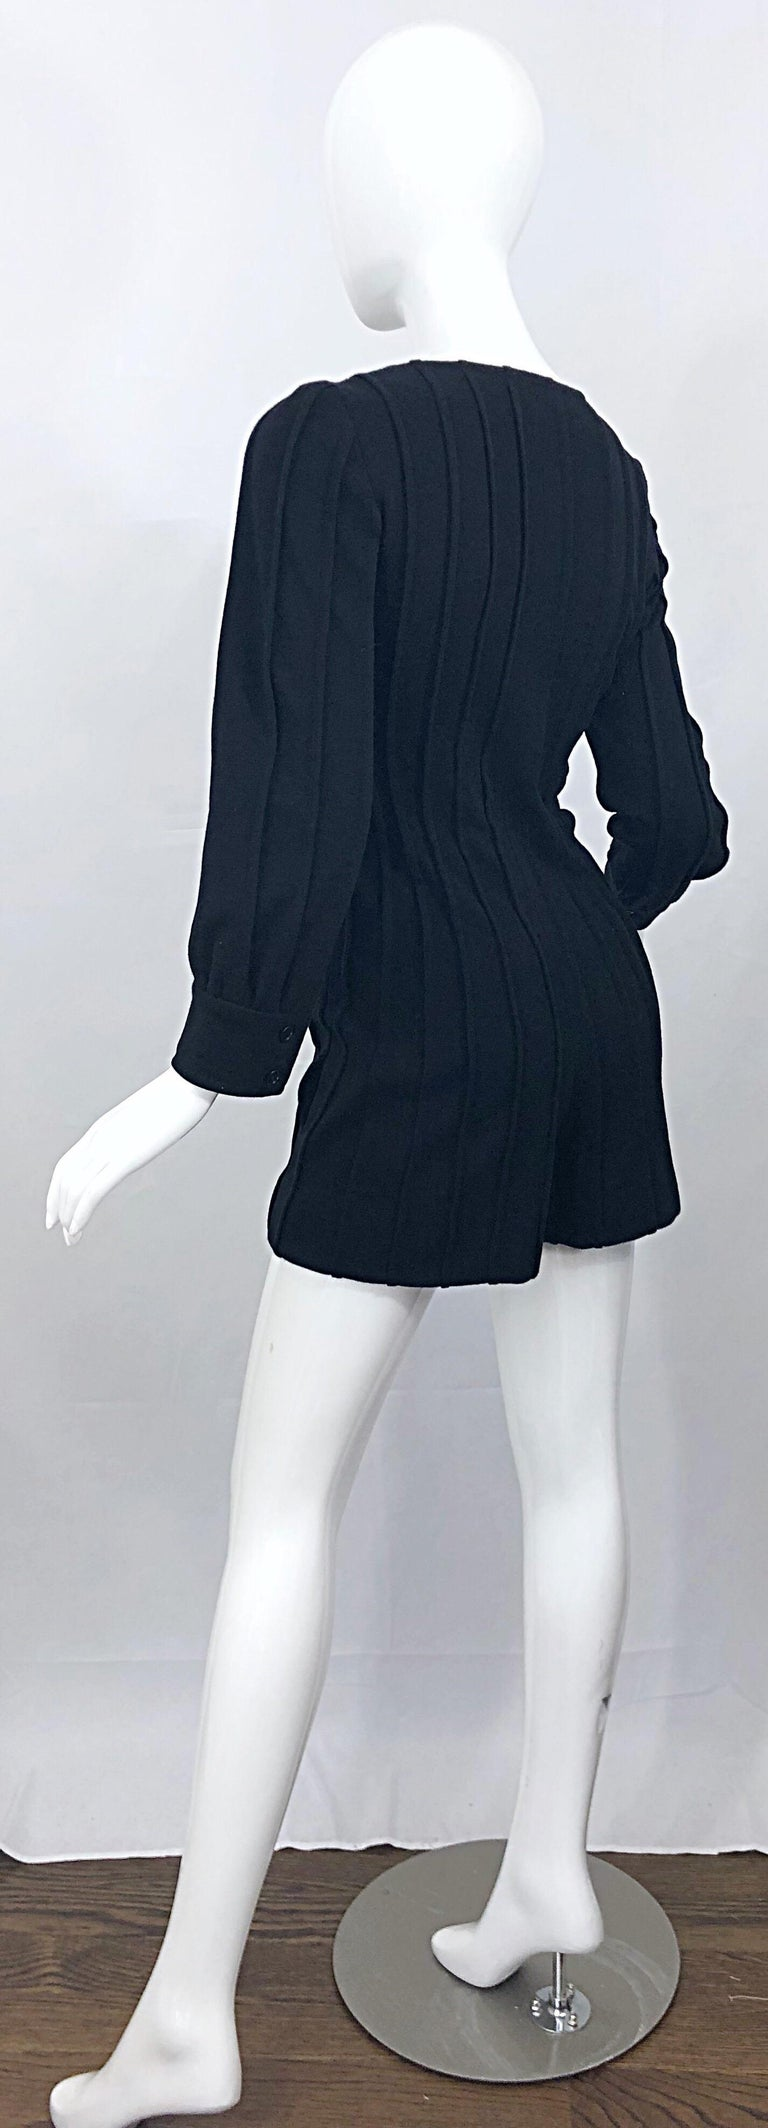 Vintage Givenchy Haute Couture Black Wool Long Sleeve One Piece Romper Jumpsuit For Sale 6